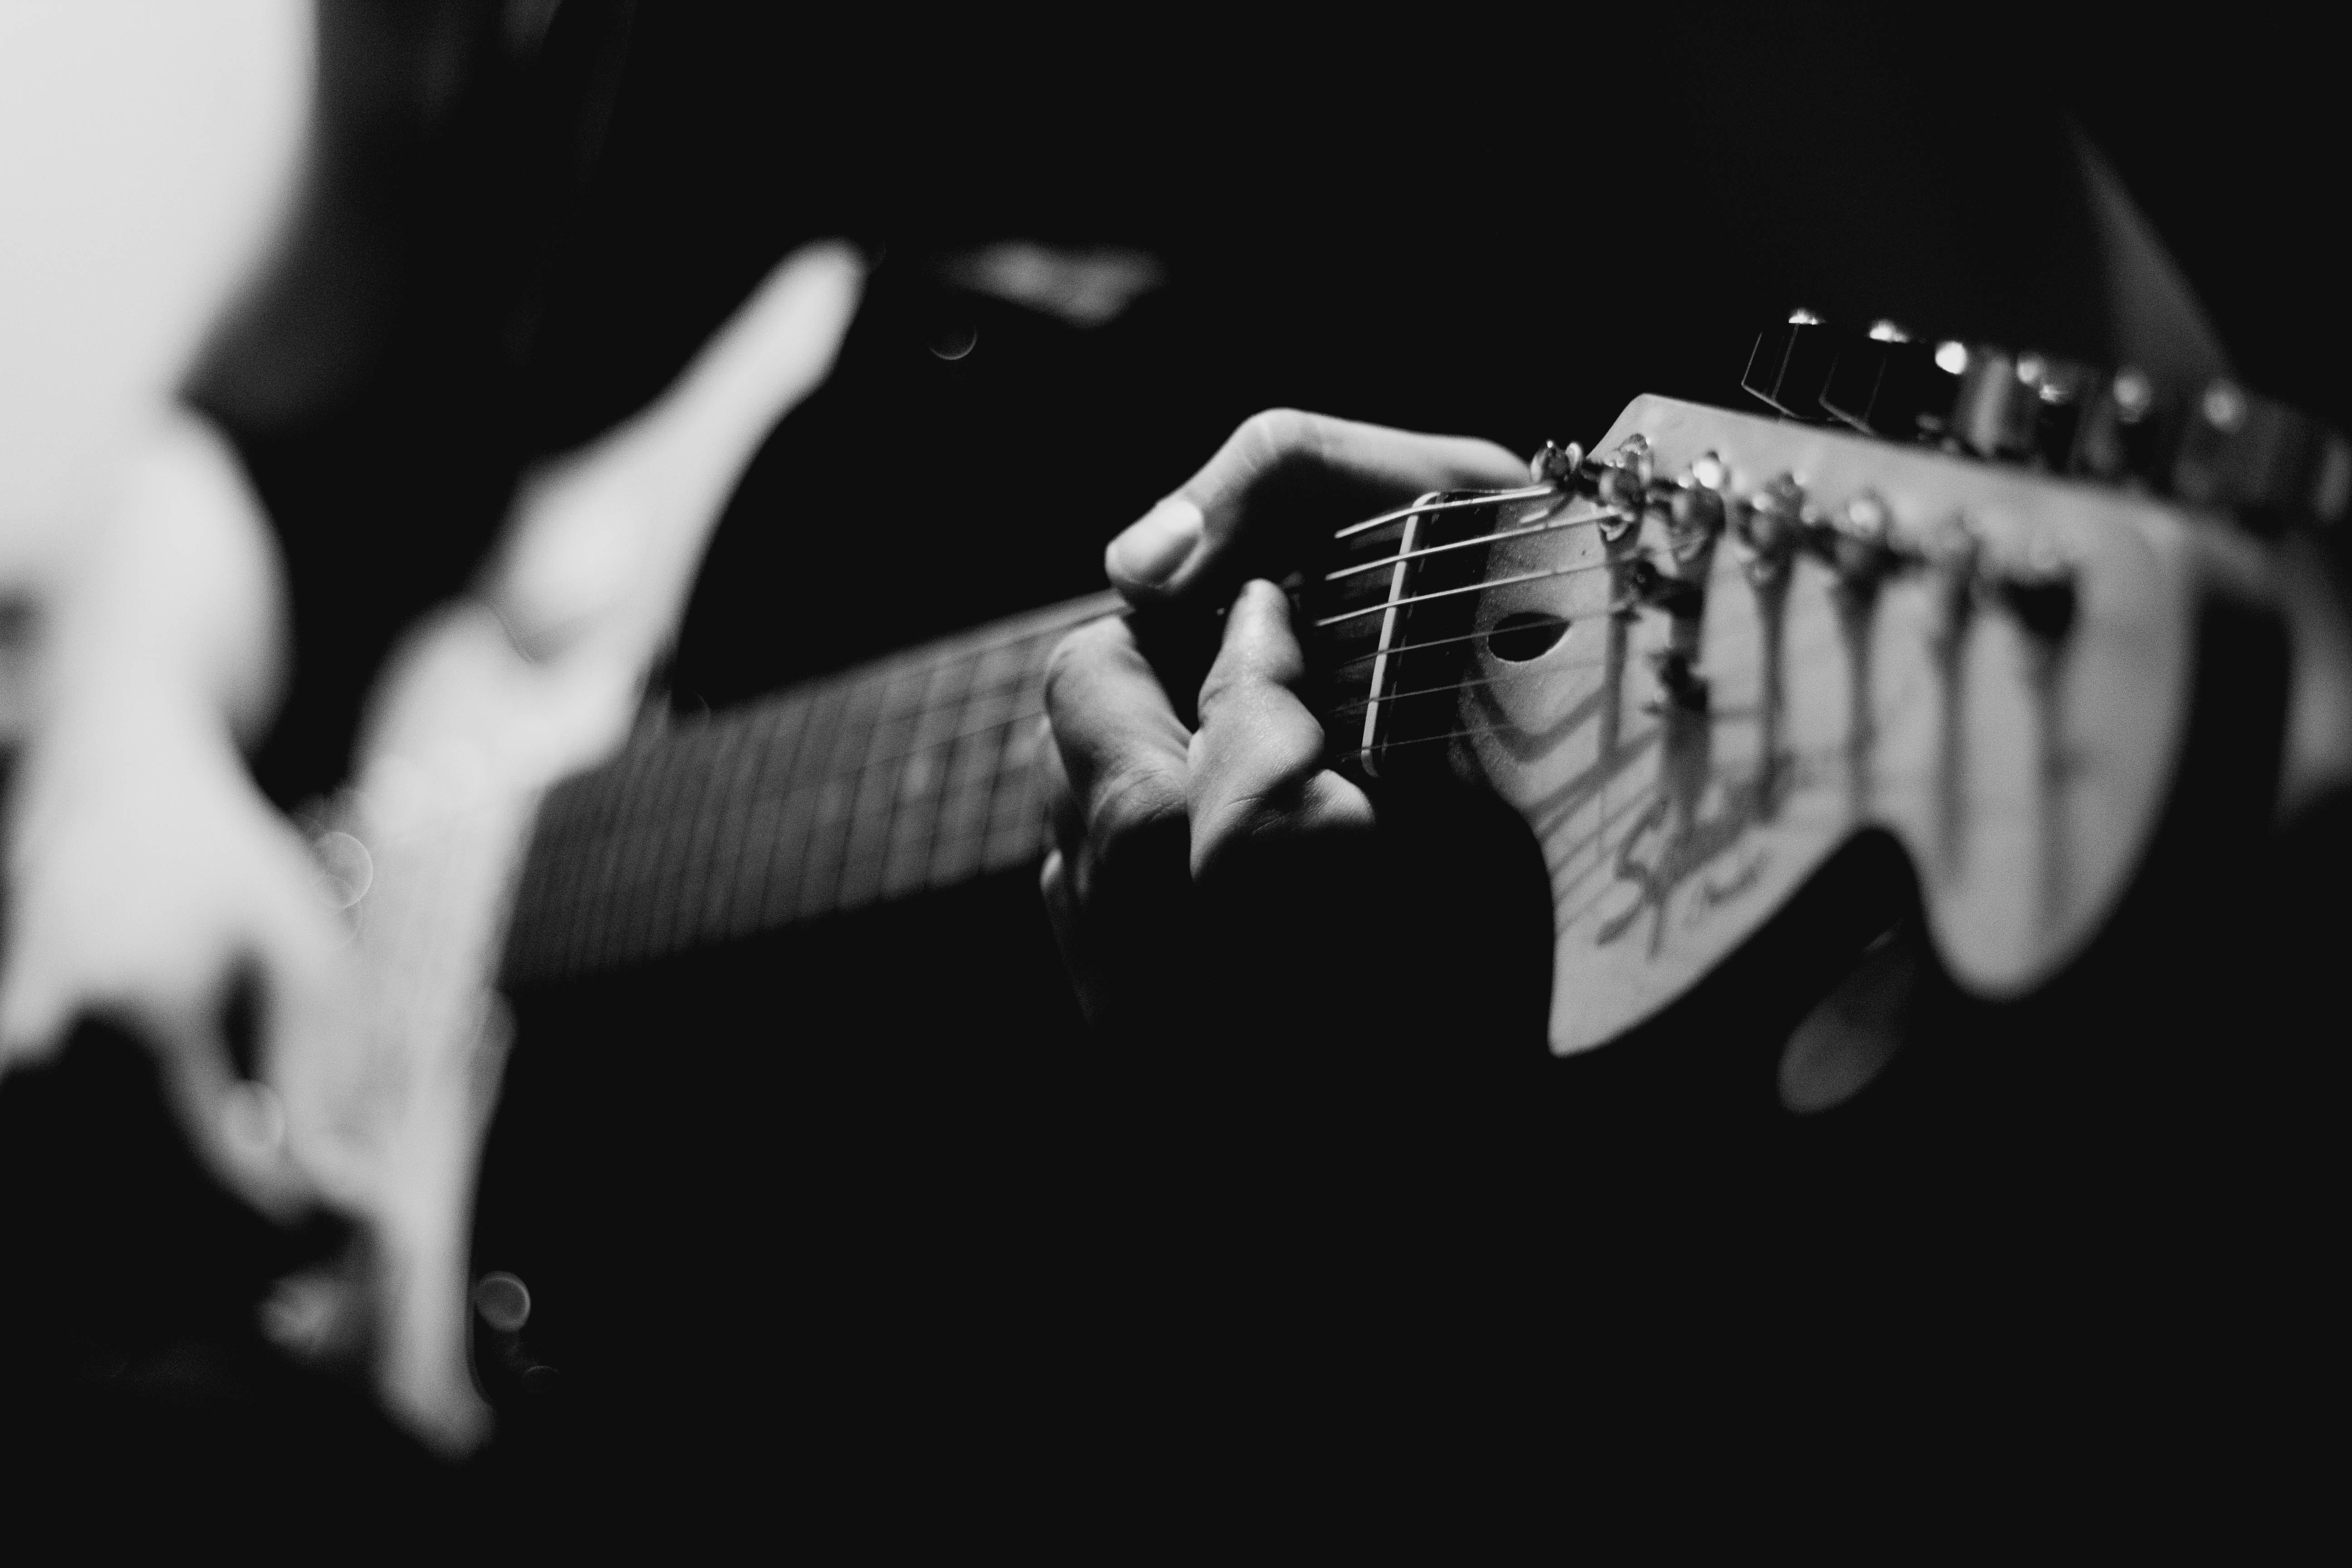 grayscale photography of person playing electric guitar